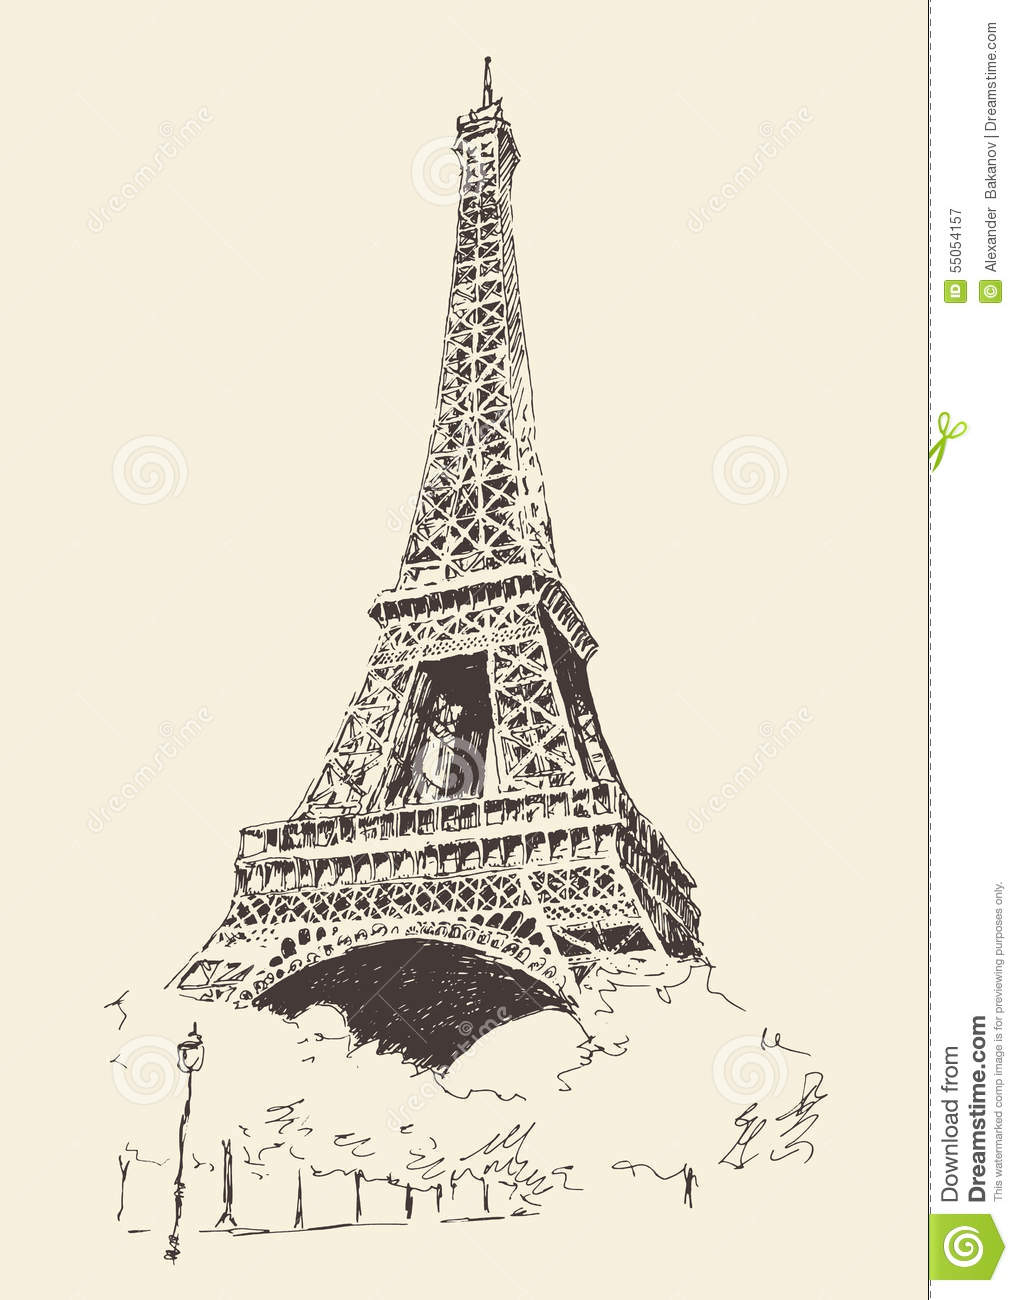 Eiffel tower paris france engraved hand drawn stock vector for Architecture antique